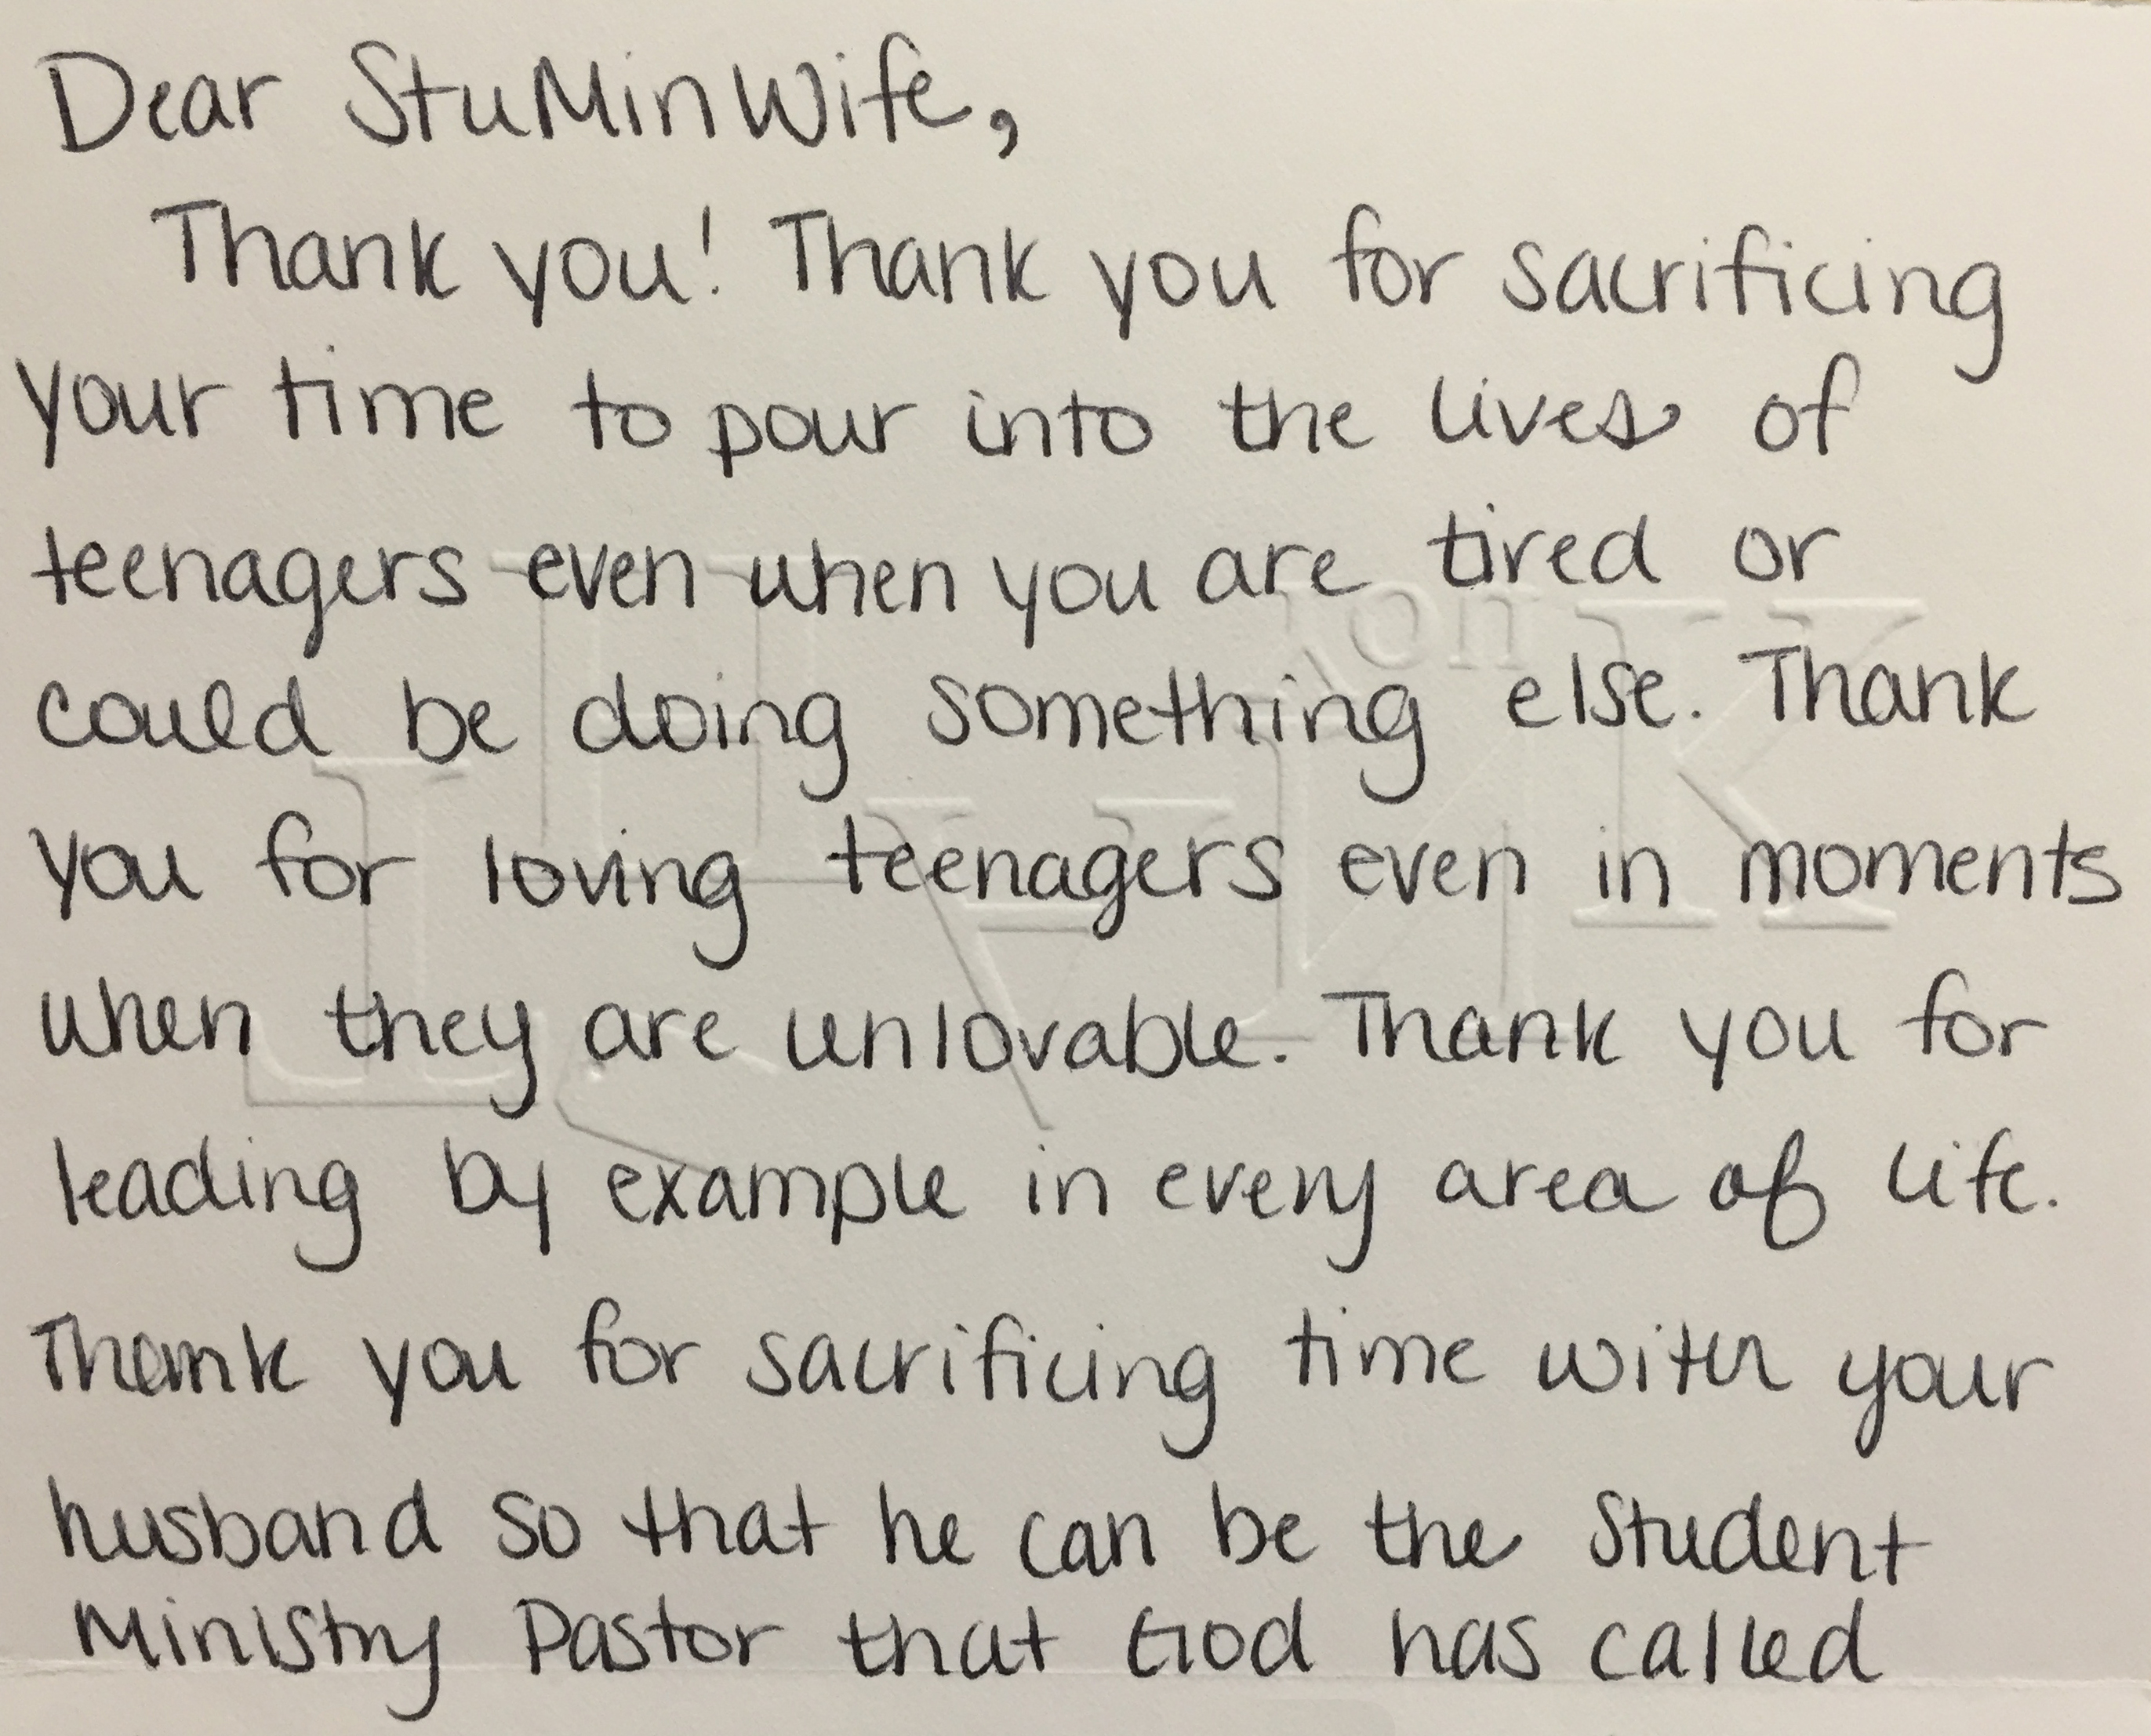 Monday Morning Encouragement An Open Thank You Note Stuminwife